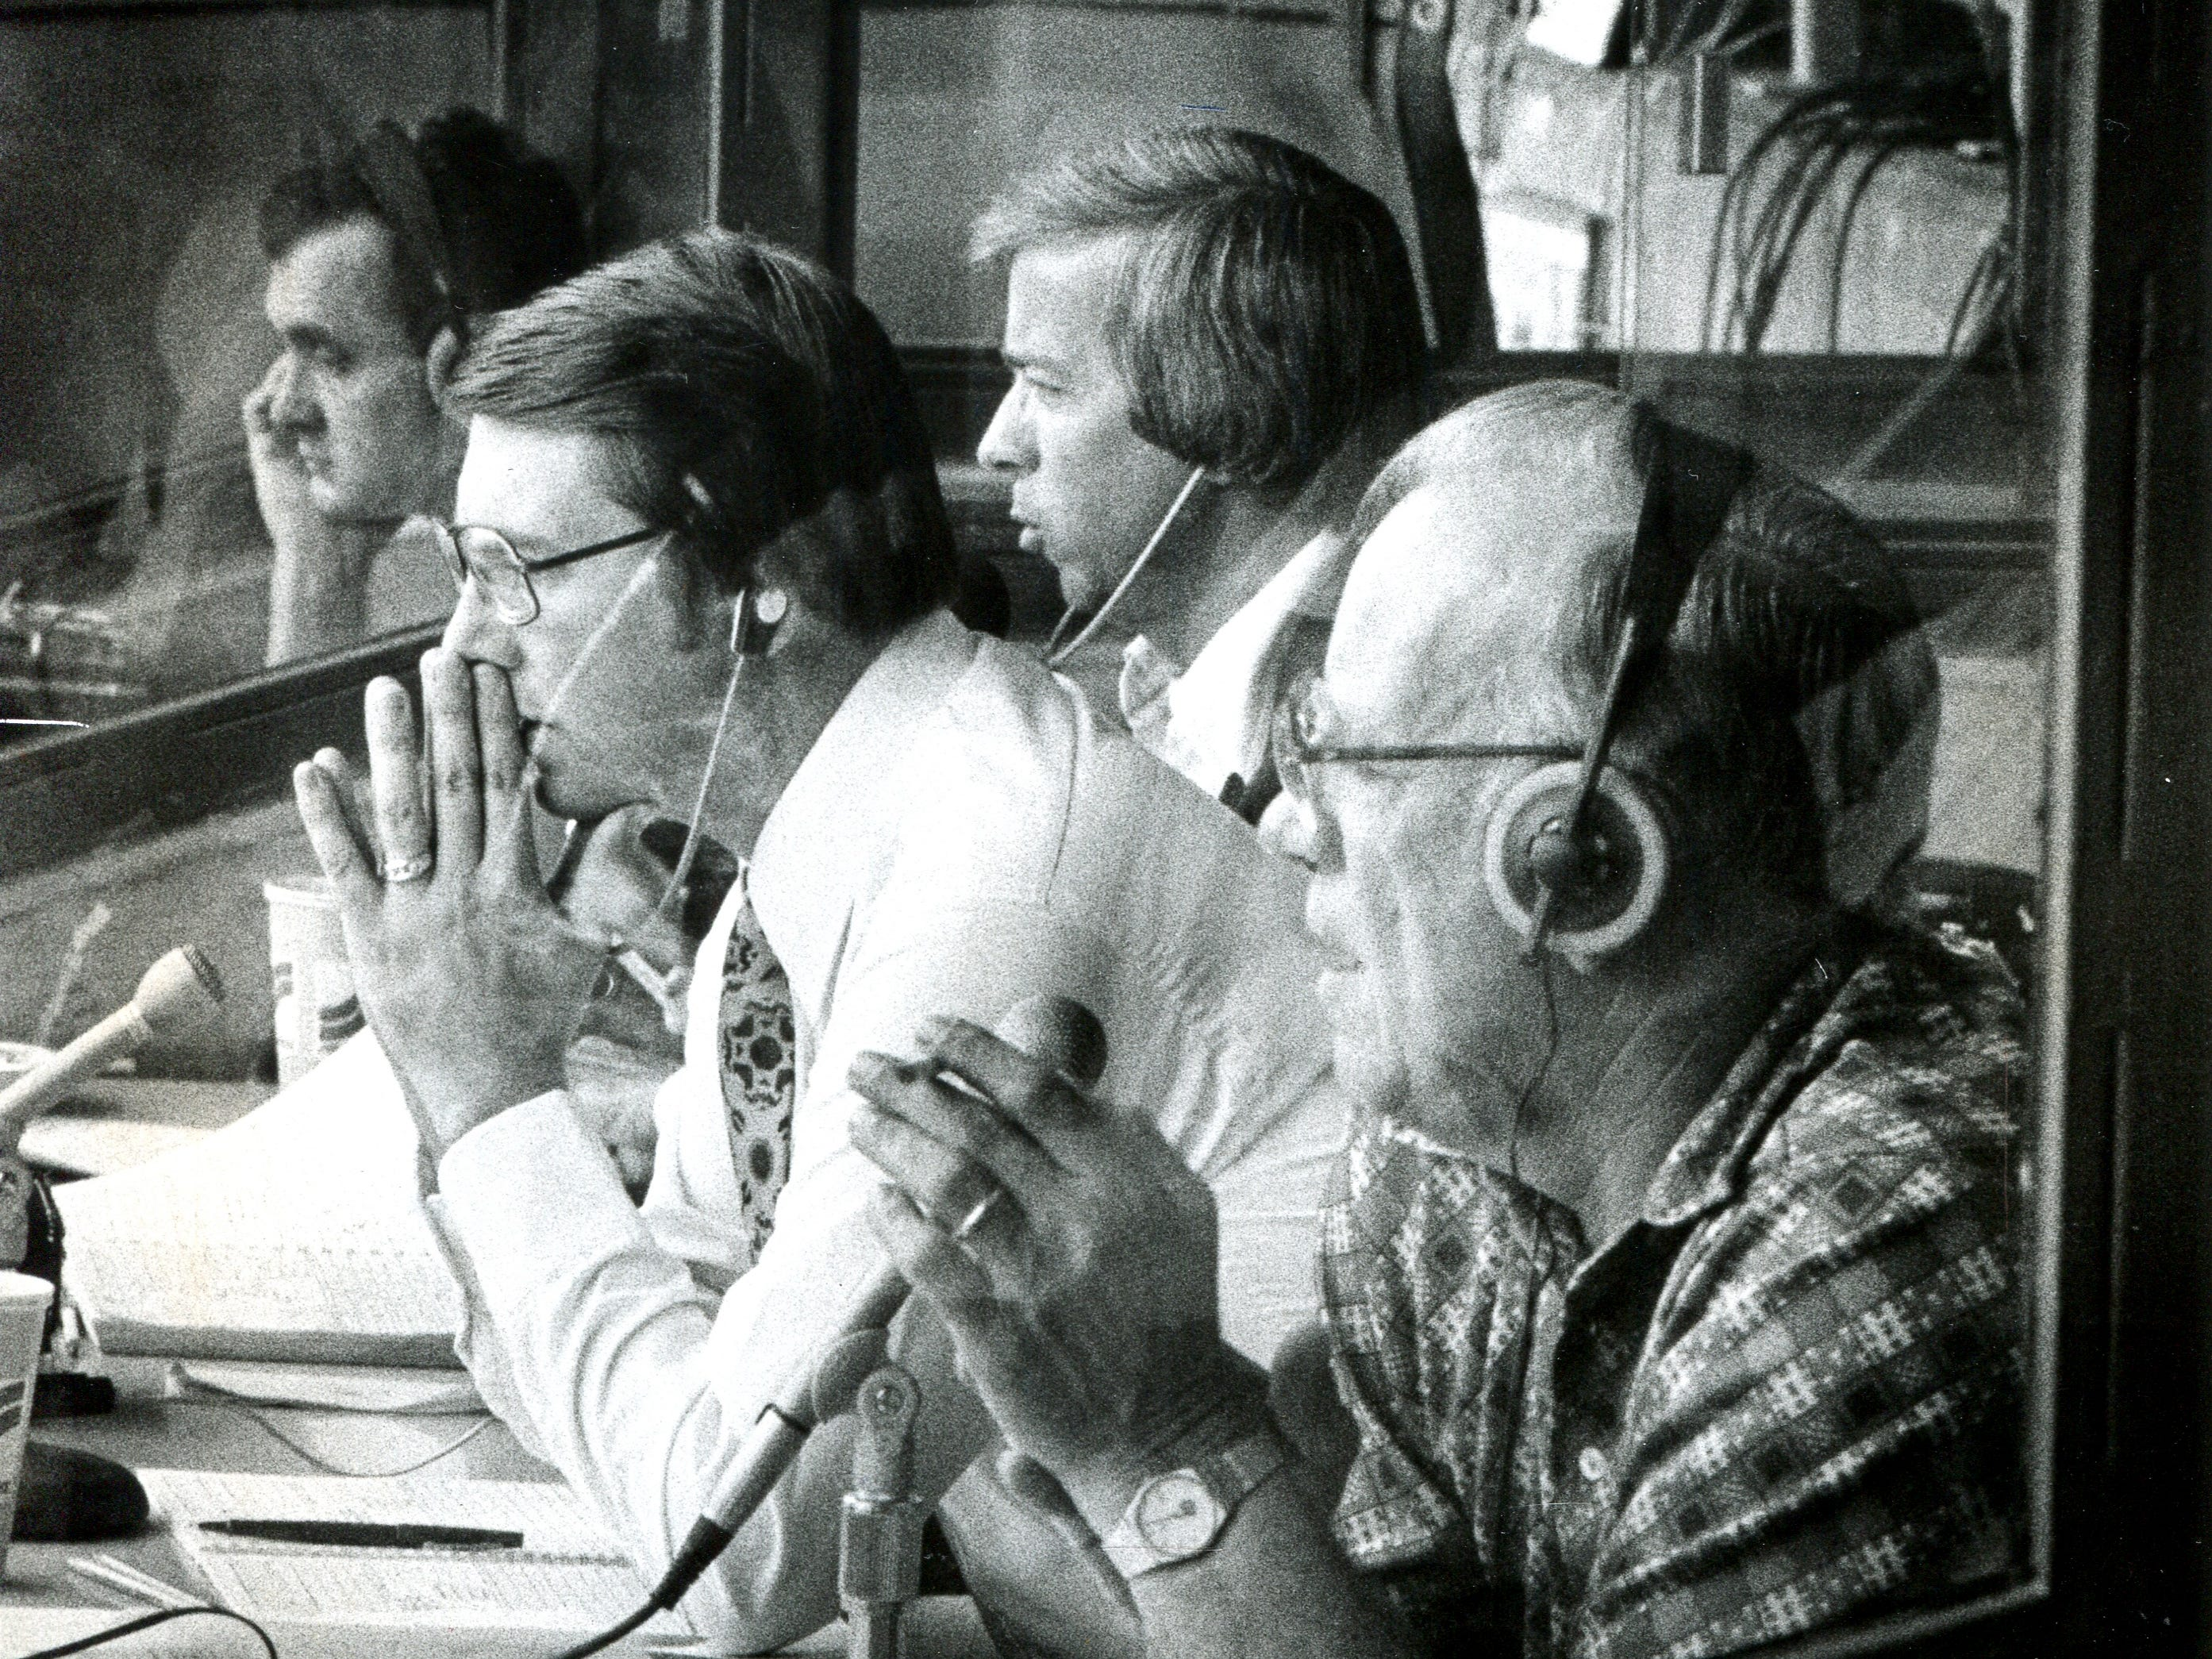 Cincinnati Reds broadcasters, Marty Brennaman, Dick Carlson, and Joe Nuxhall. Enquirer file photo by Dick Swaim Sept. 1980.